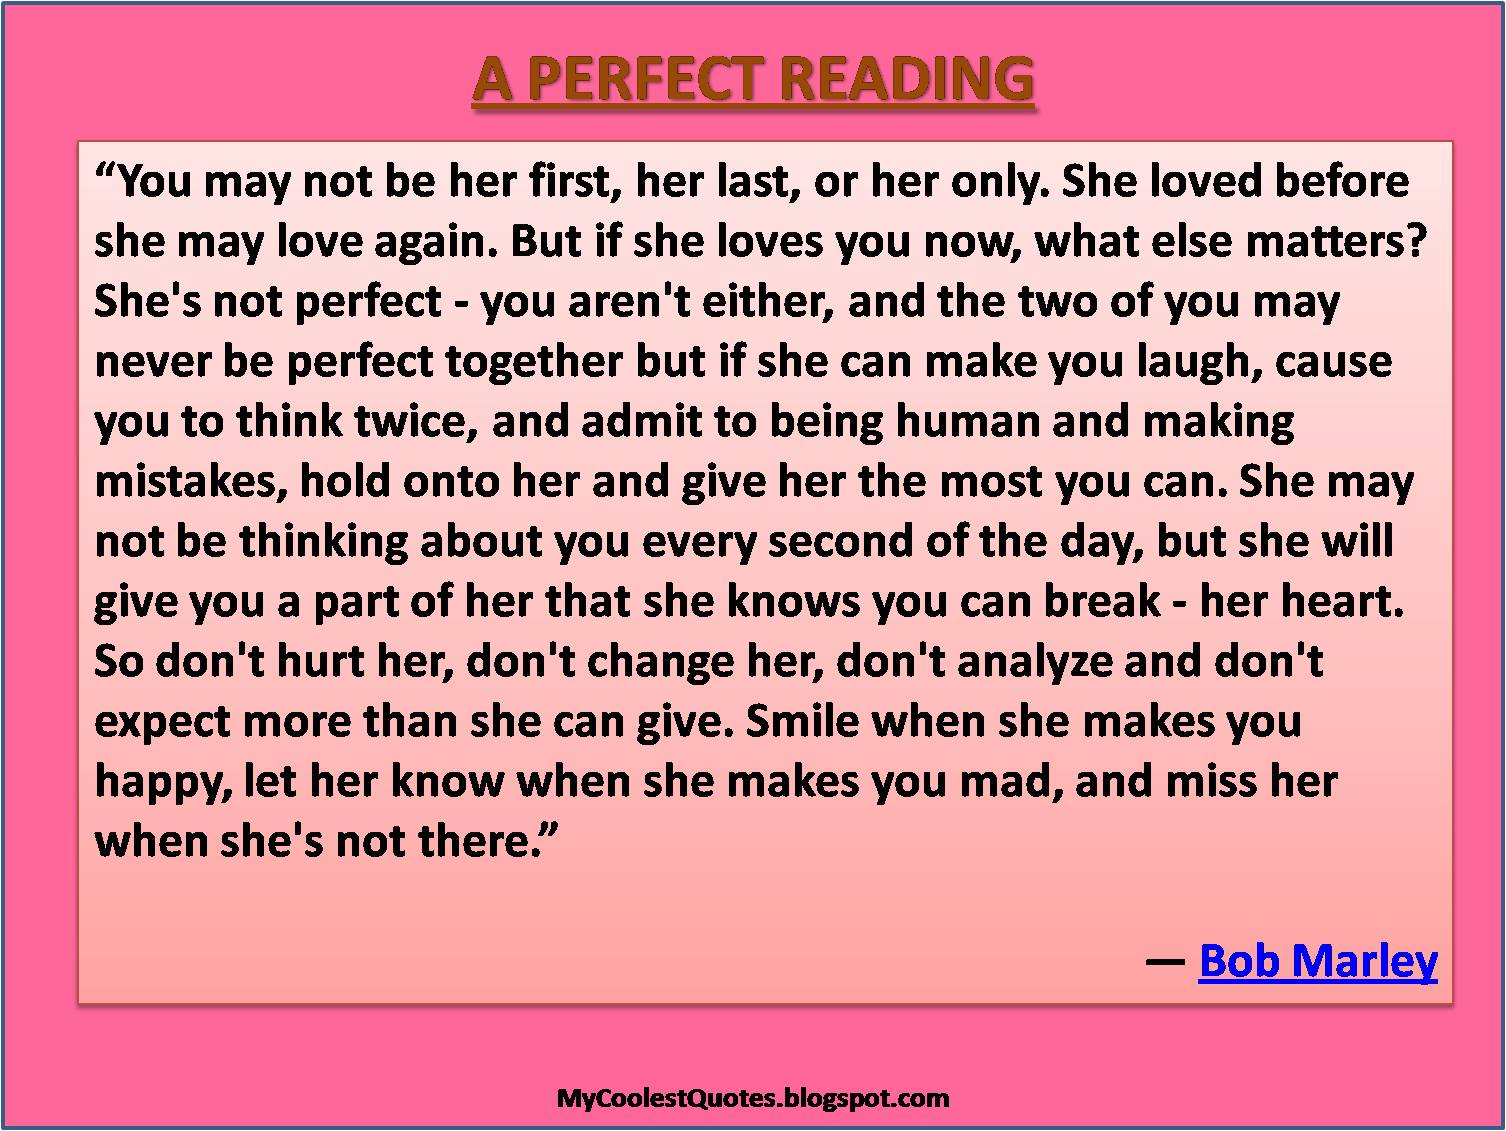 Valentines Quotes For Her My Coolest Quotes A Mustread On This Valentine's Day  You May